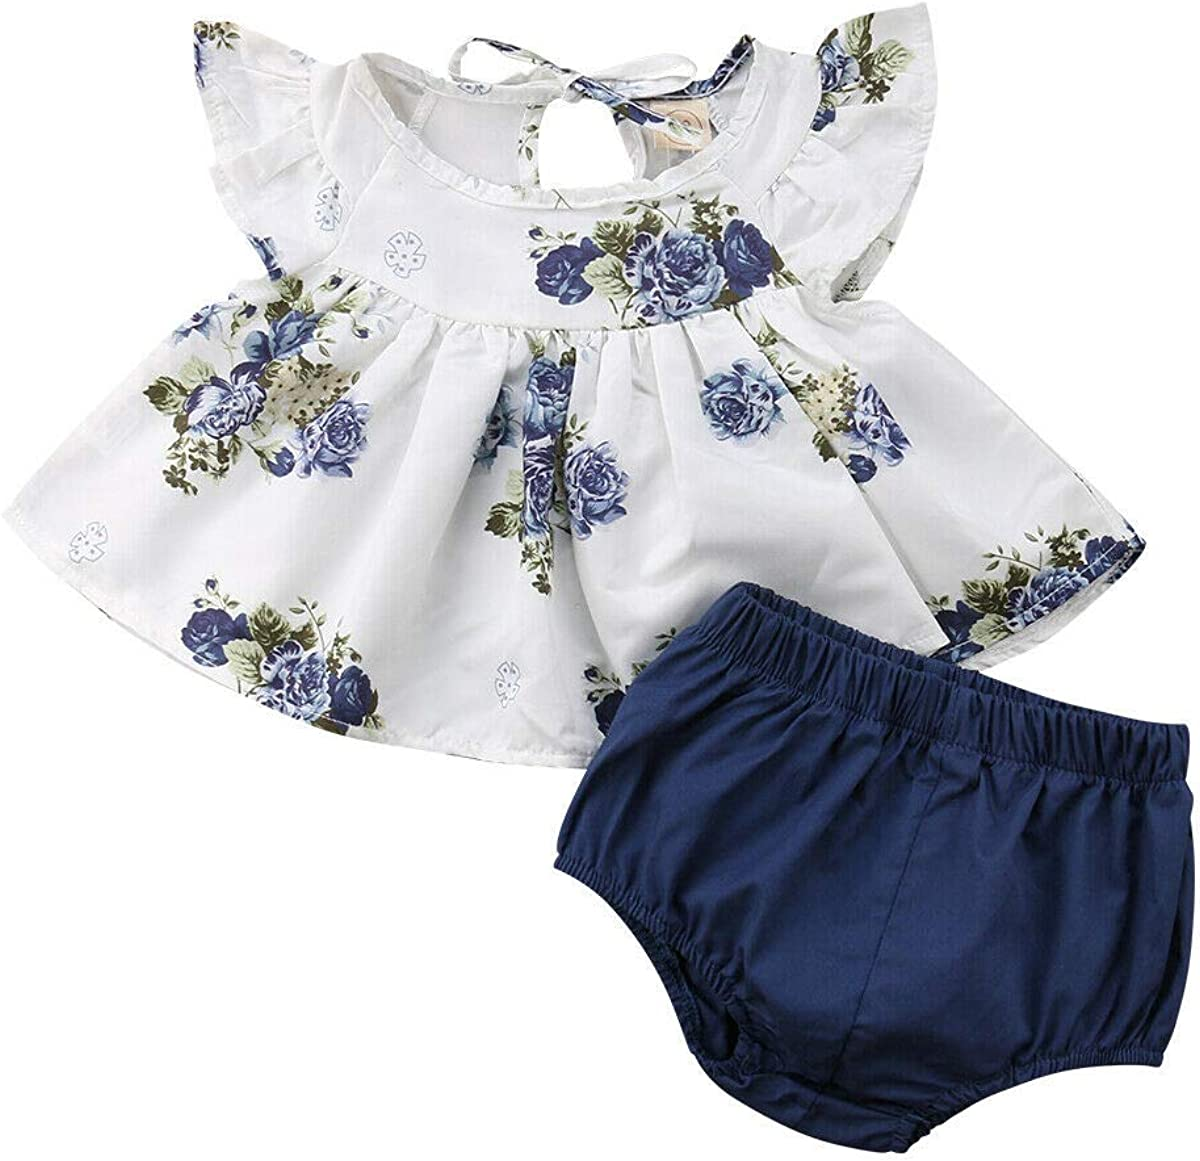 Newborn Baby 4 Piece Suit Set Top Blouse Floral Sleeveless Ruffle Dress  T-Shirt Short Pants Summer Clothes for Little Girls Casual Party Photo